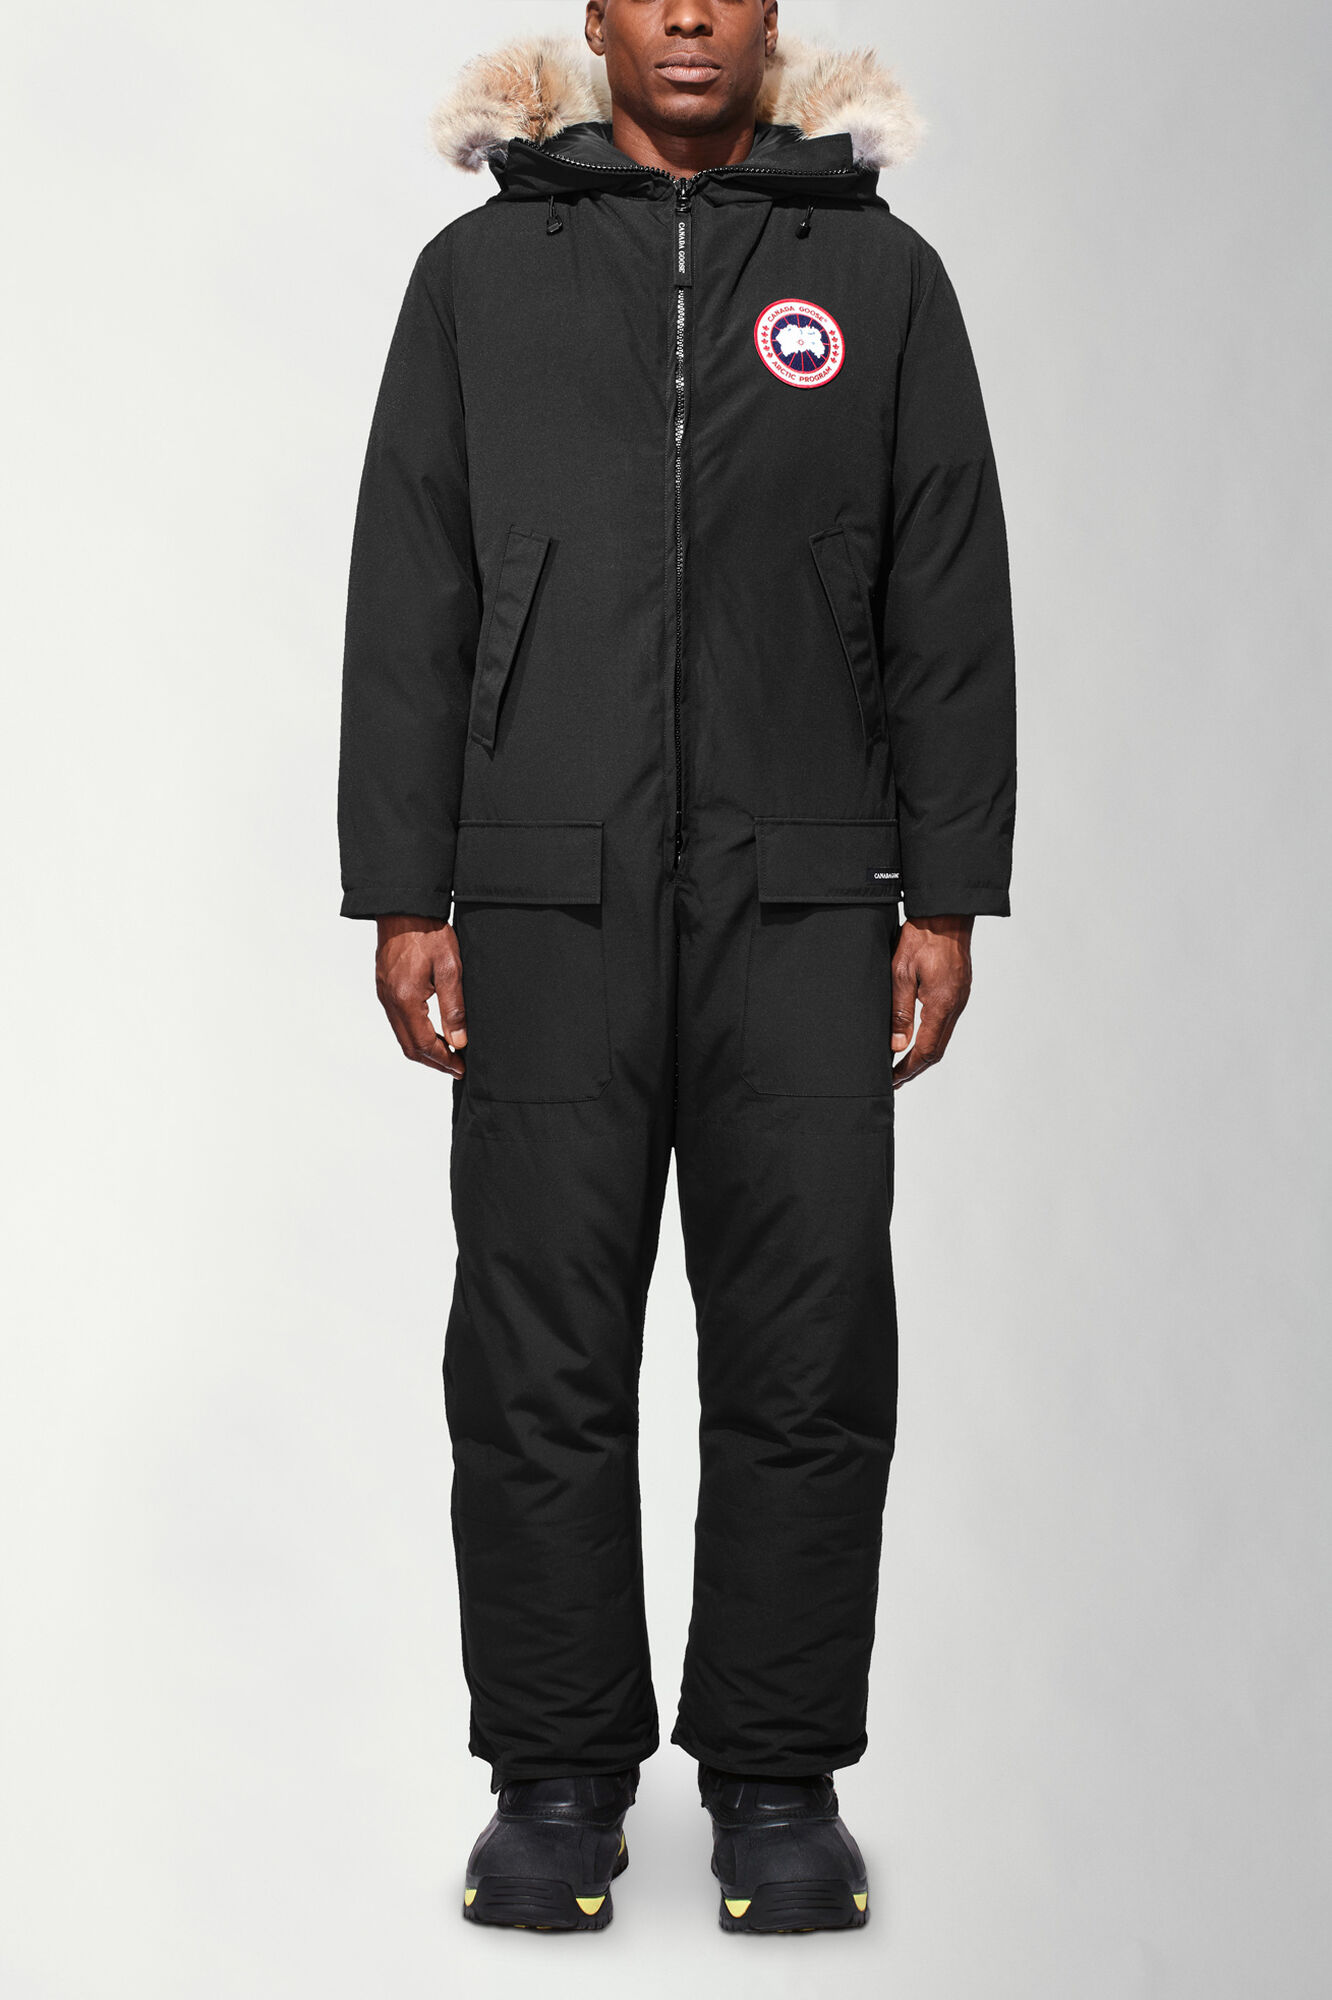 Canada Goose womens sale cheap - Mens Extreme Weather Outerwear | Canada Goose?